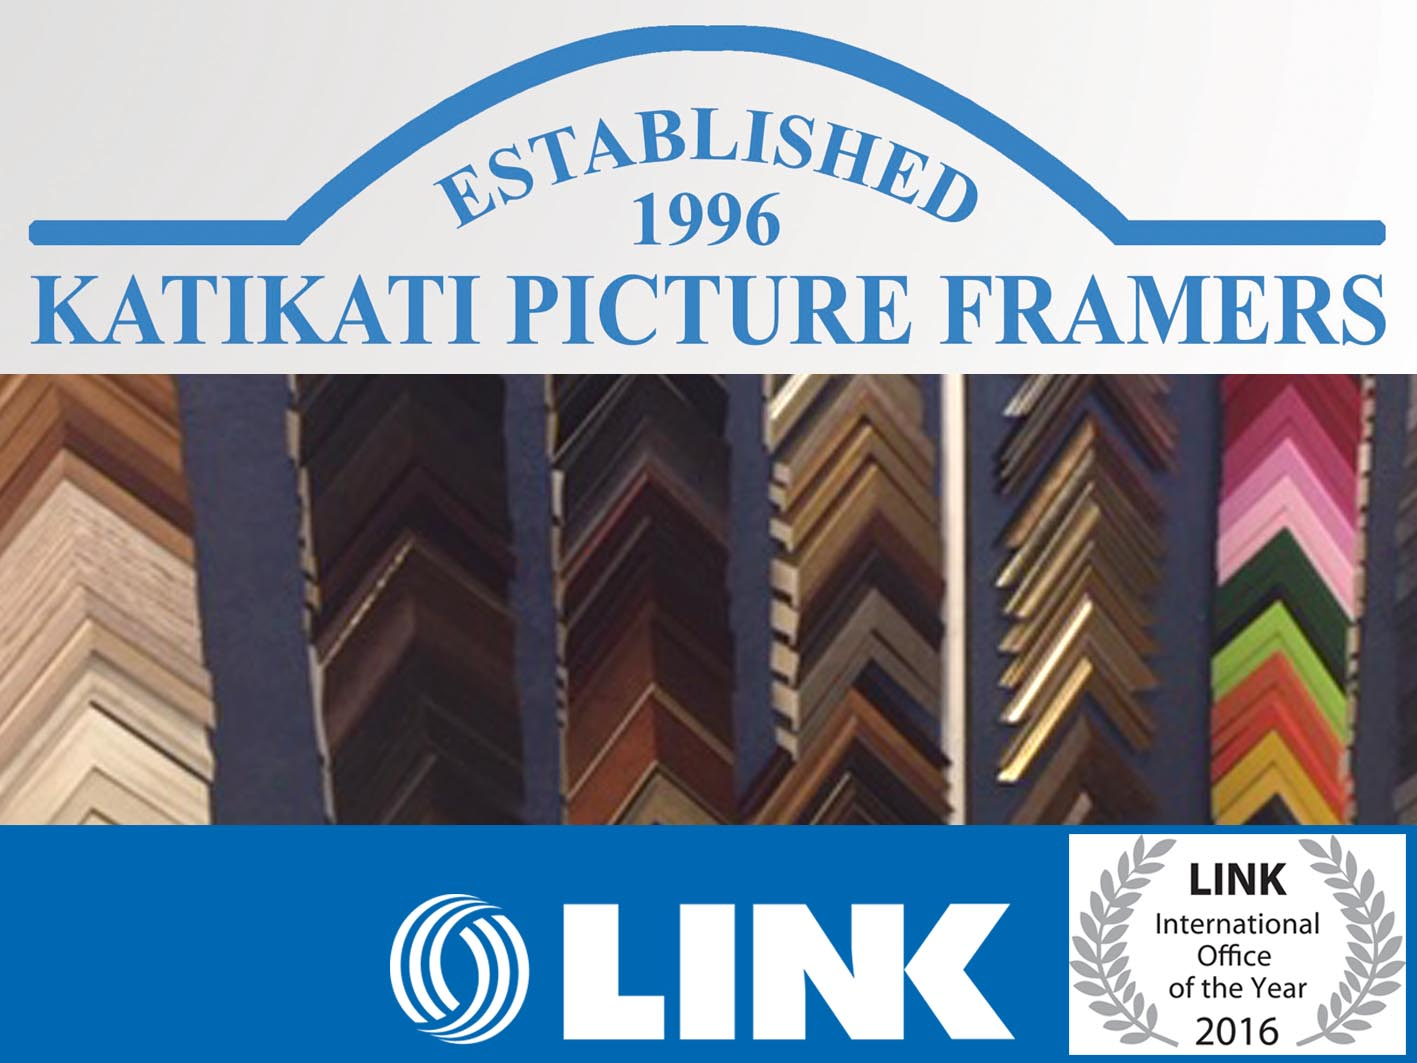 Retail Picture Framing Business for Sale Katikati